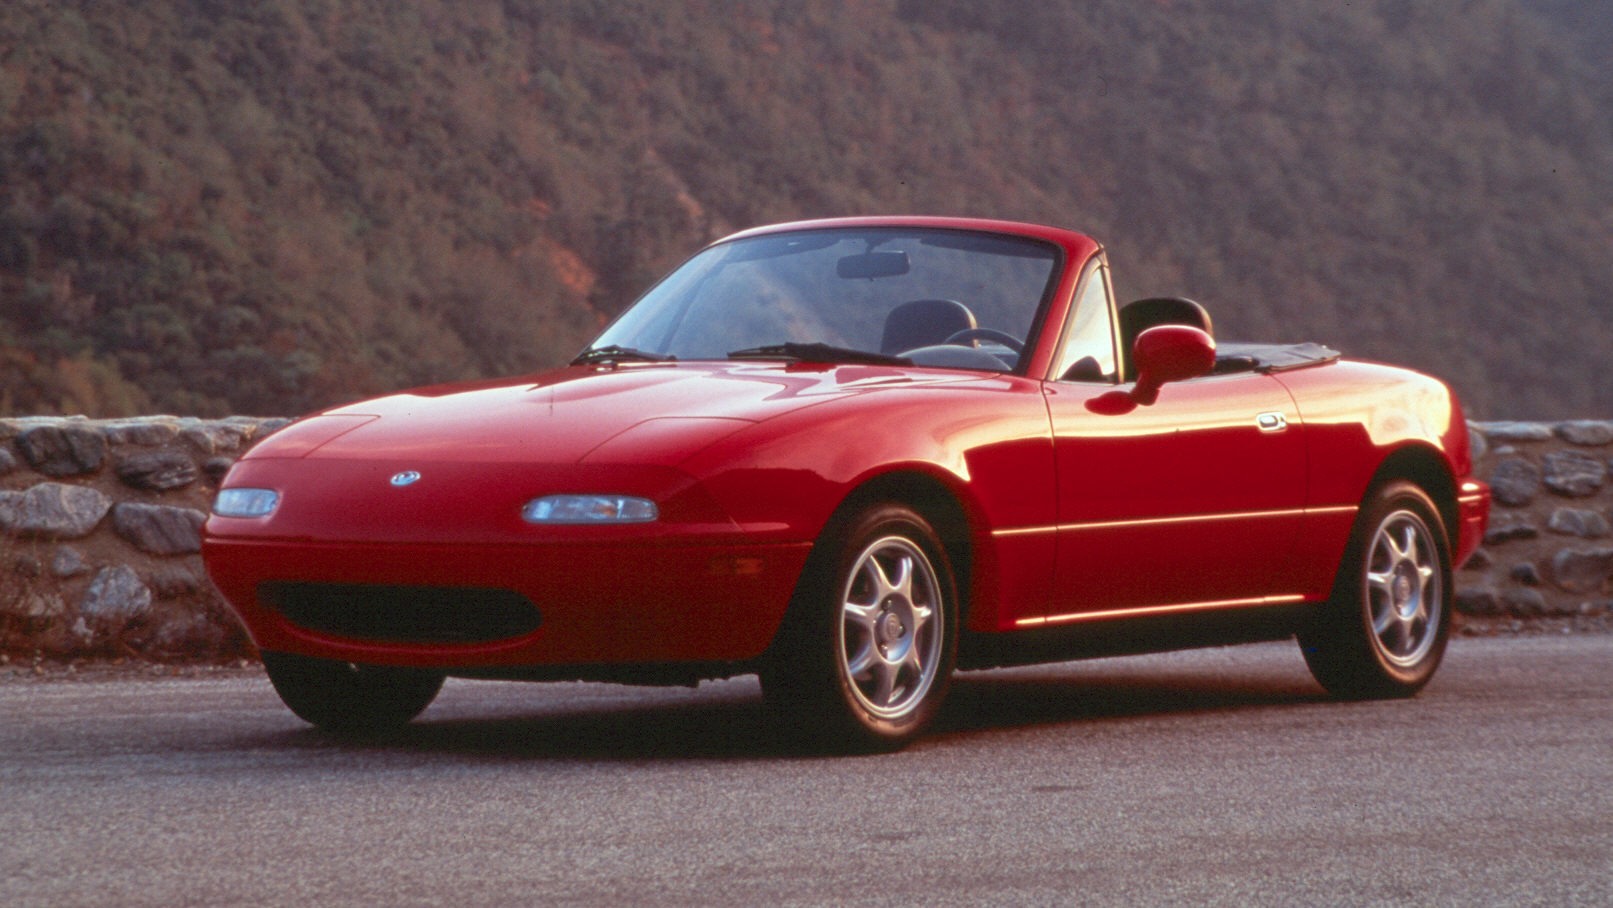 Autoblog\'s Picks For The Best $5,000 Used Cars